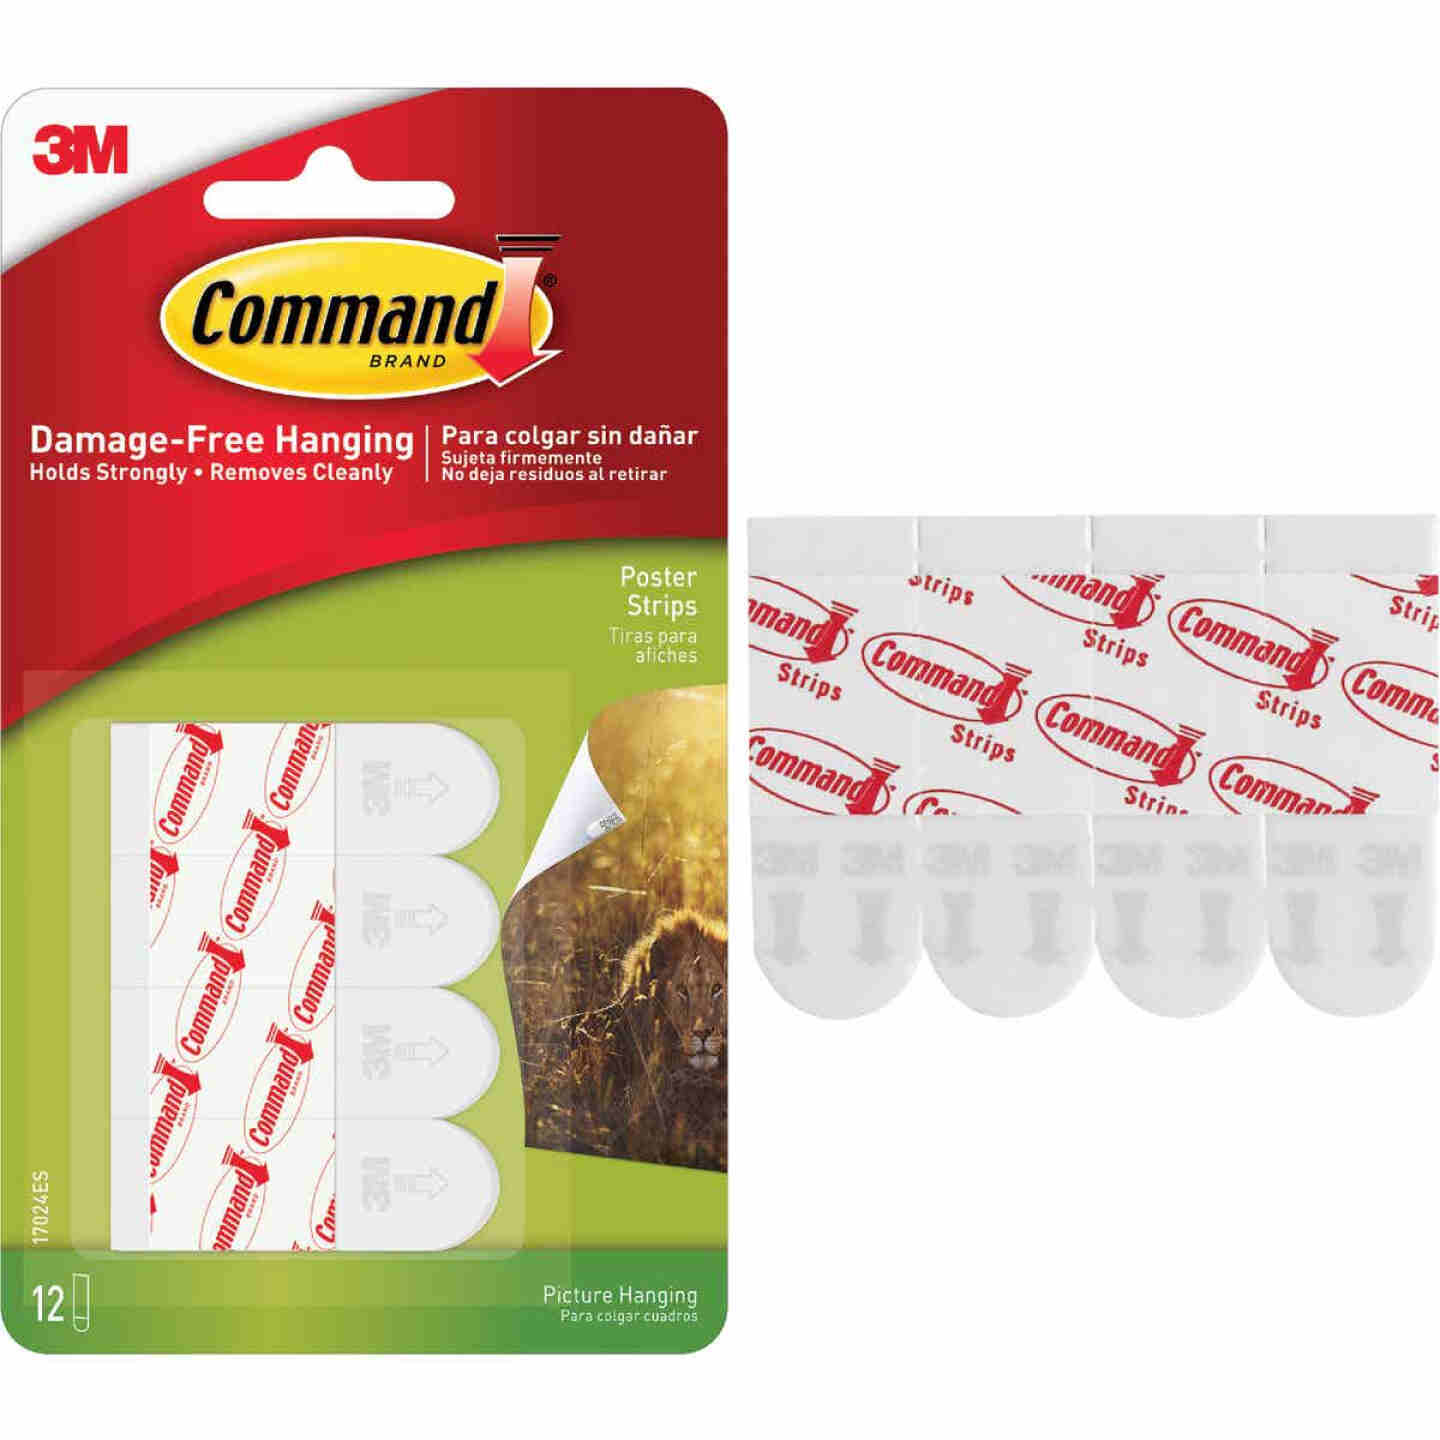 3M Command 3.87 In. x 0.23 In. 1 Lb. Capacity Removable Poster Mounting Strips (12-Pack) Image 1